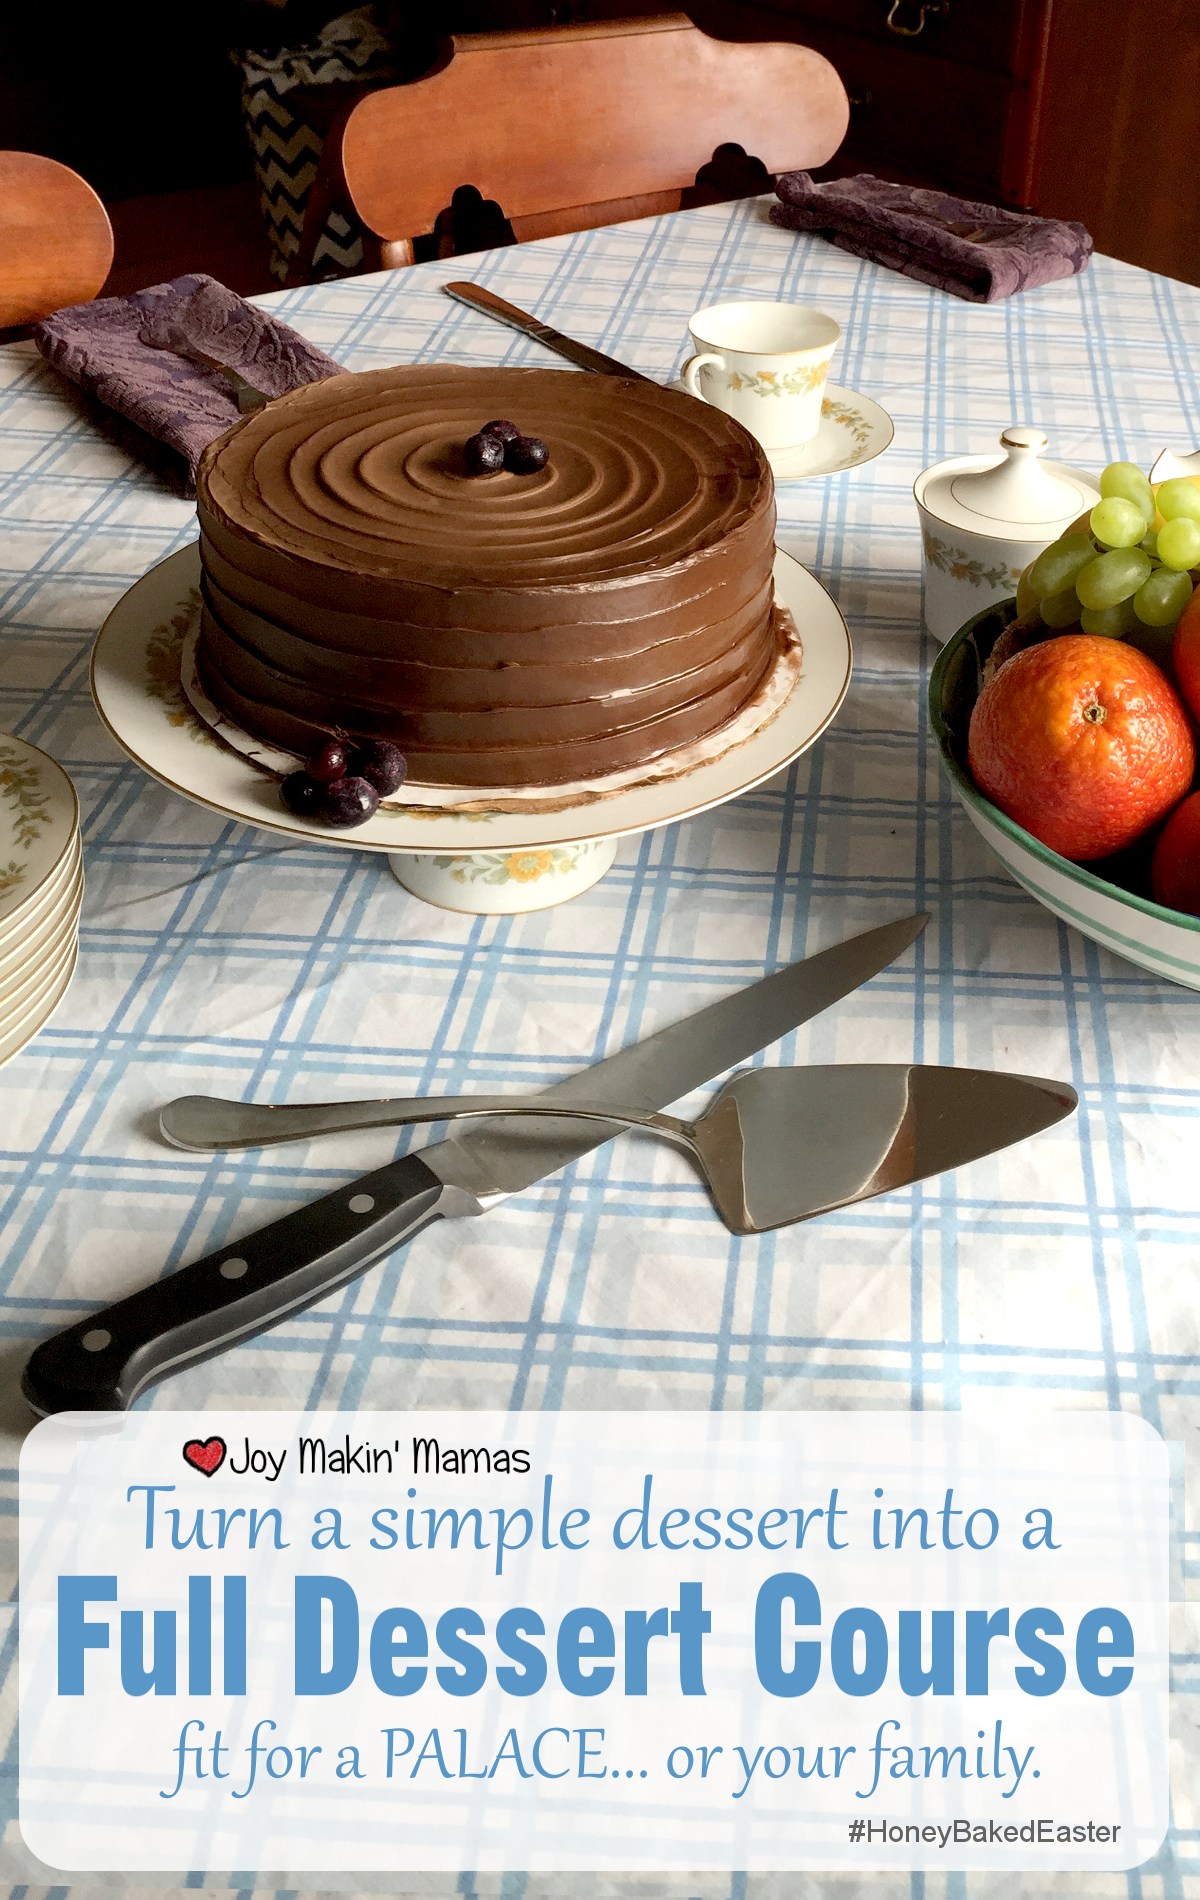 Joy Makin' Mamas #HoneyBakedEaster Dessert Course #Sponsored